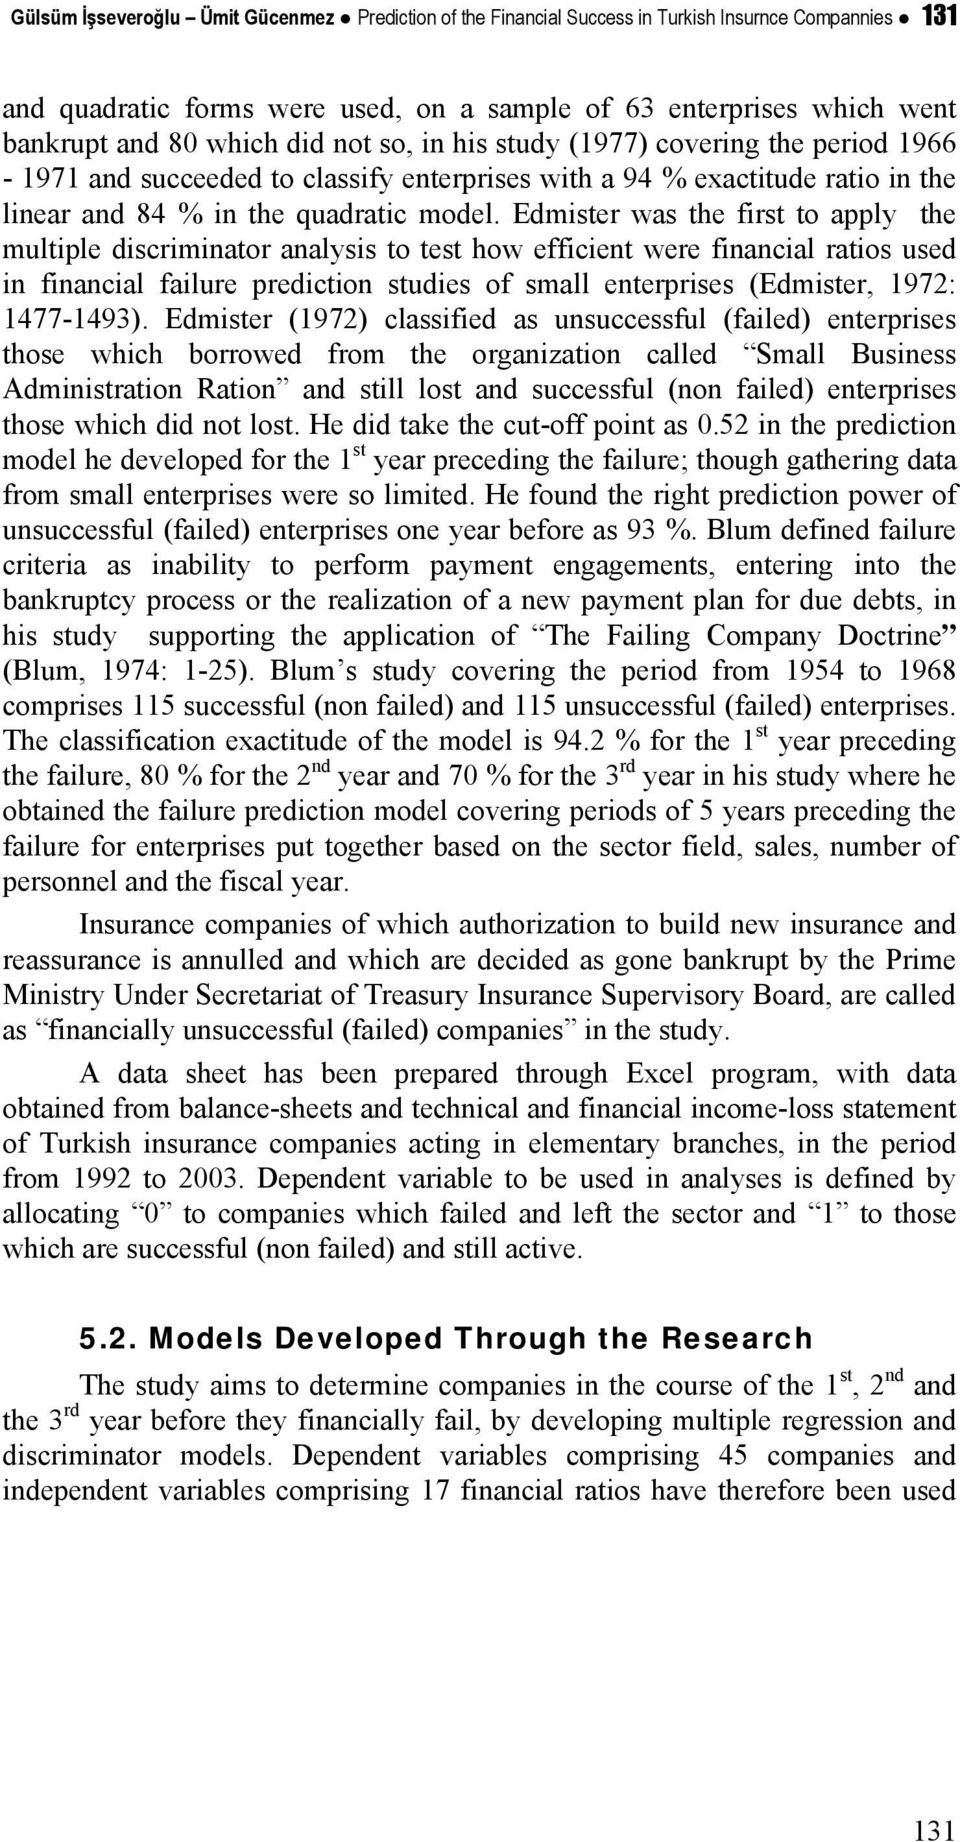 Edmister was the first to apply the multiple discriminator analysis to test how efficient were financial ratios used in financial failure prediction studies of small enterprises (Edmister, 1972: